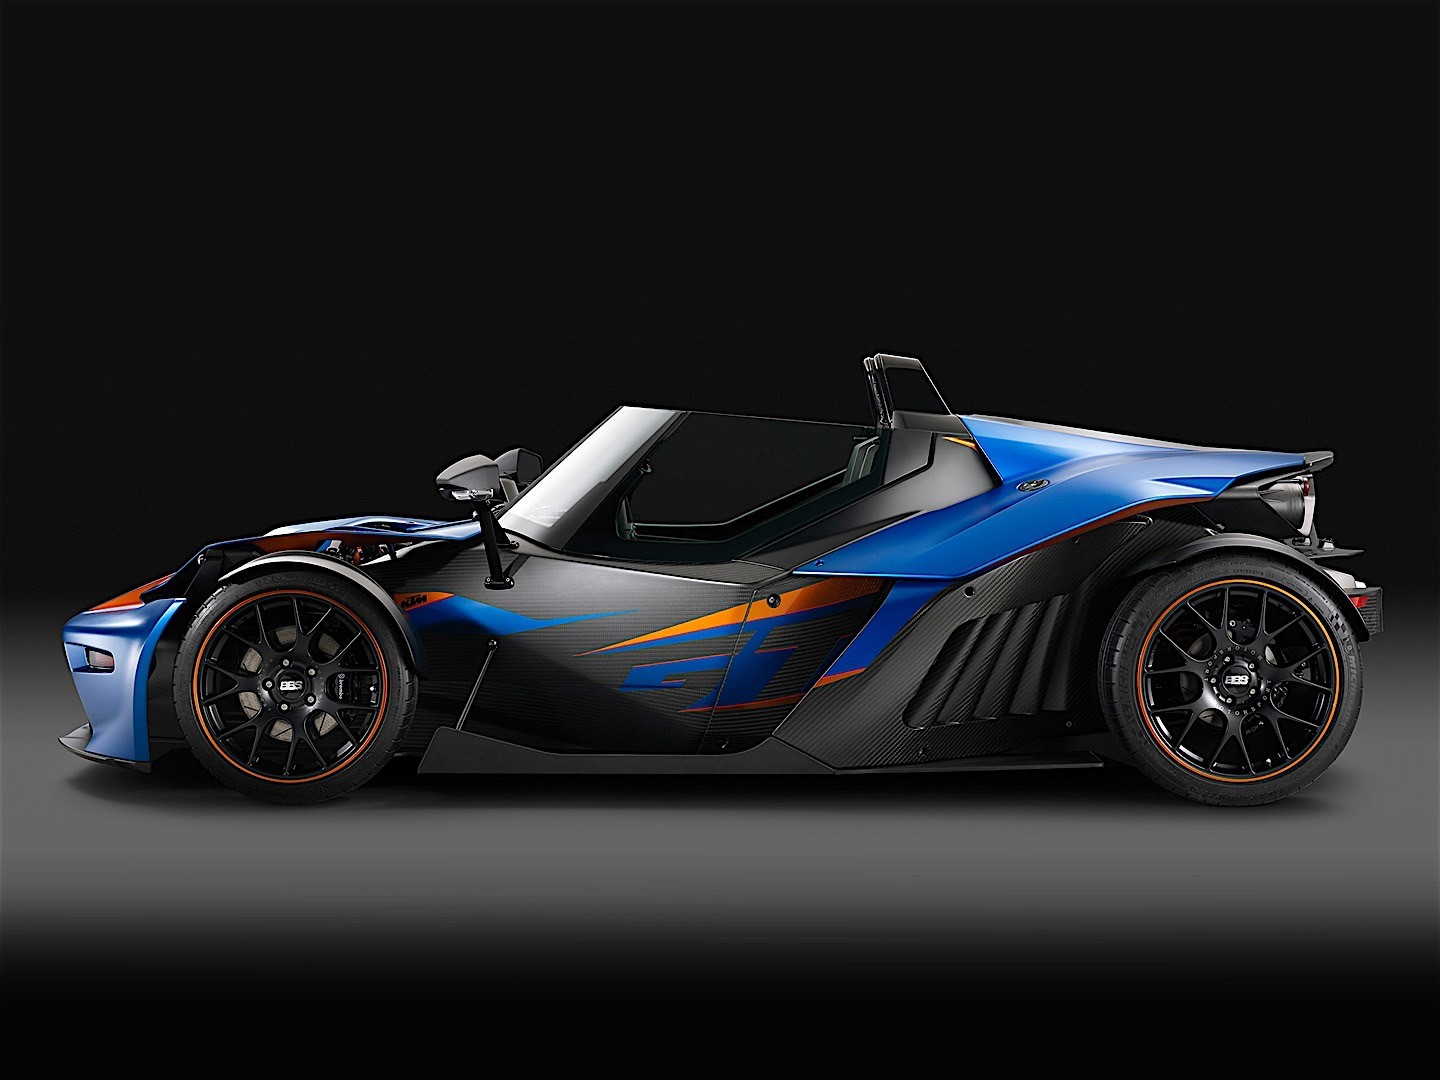 Ktm X Bow Gt Specs Amp Photos 2013 2014 2015 2016 2017